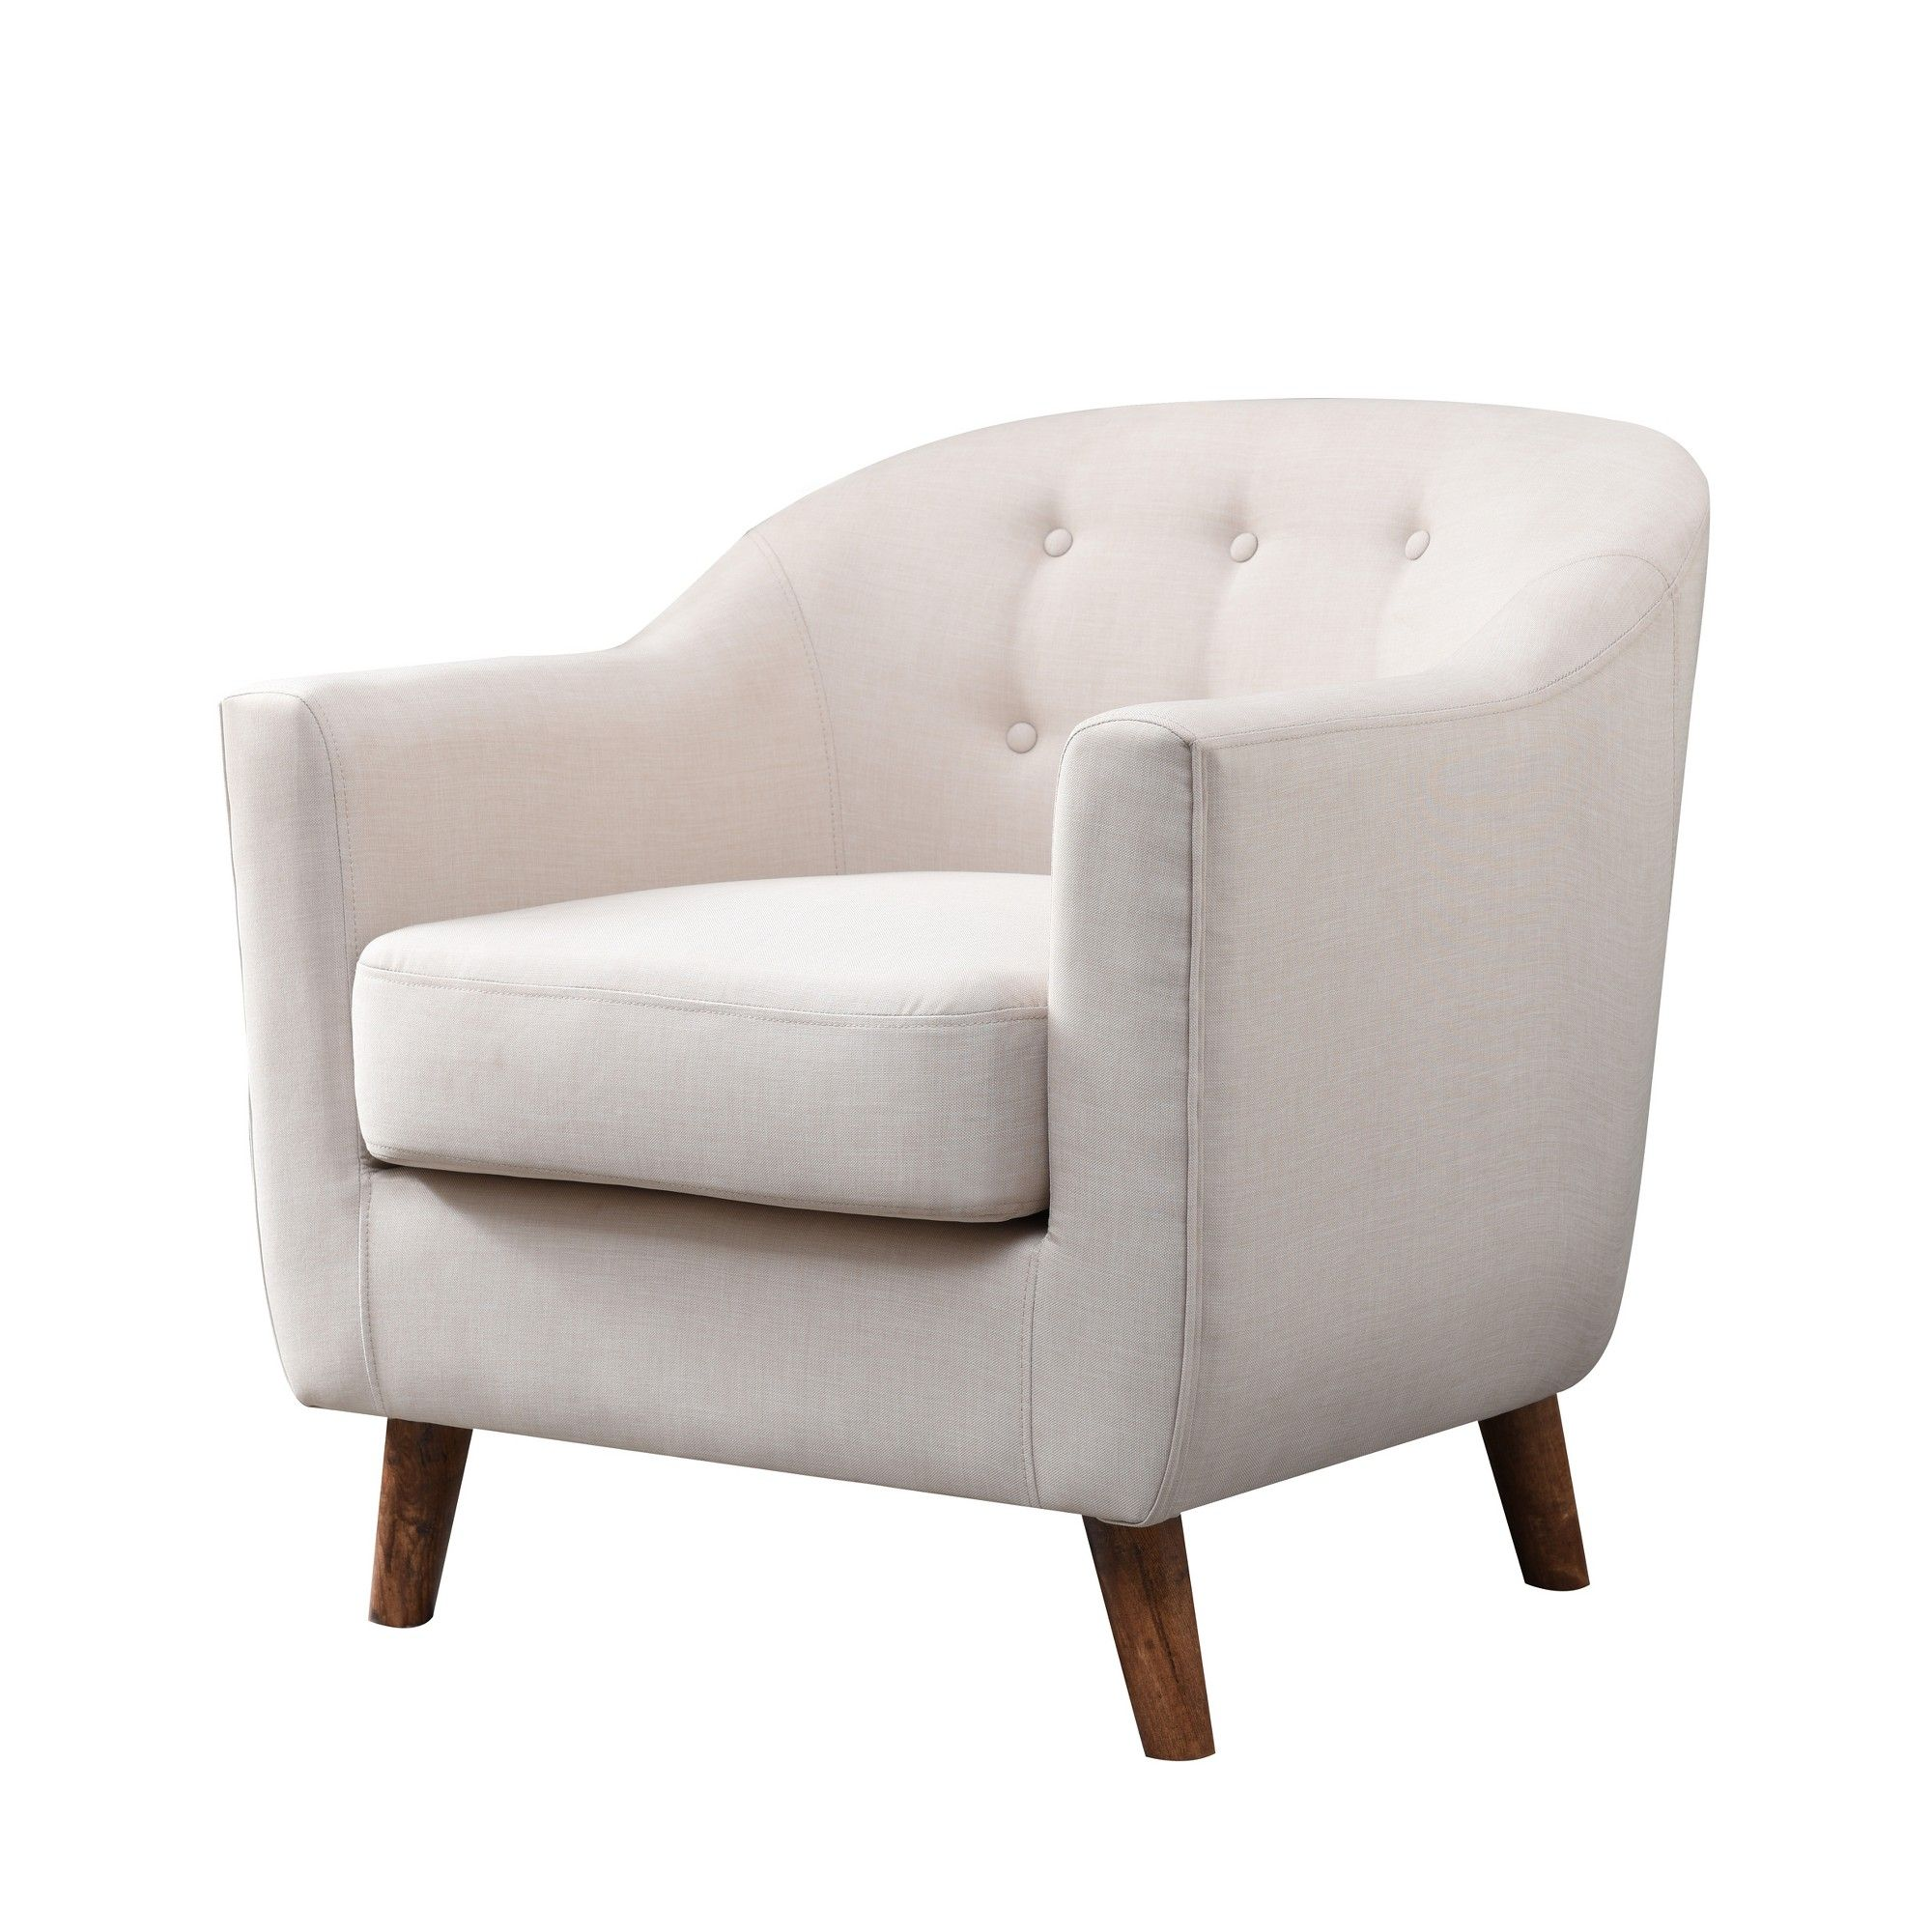 Belka tufted upholstered accent chair almond cream mibasics in